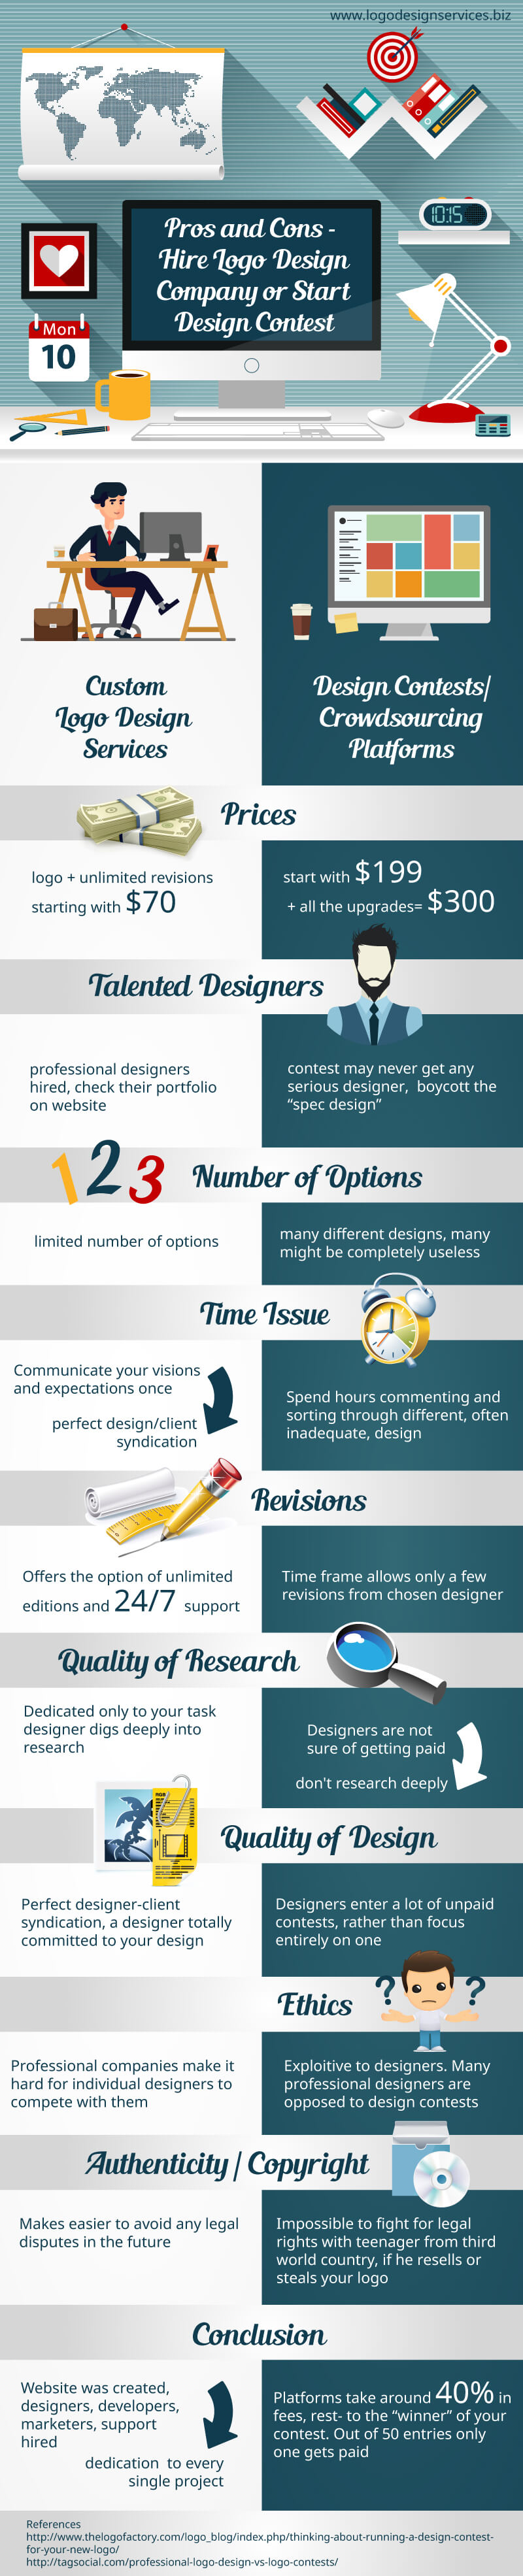 Pros-and-Cons-Hire-Logo-Design-Company-or-Start-Design-Contest-infographic